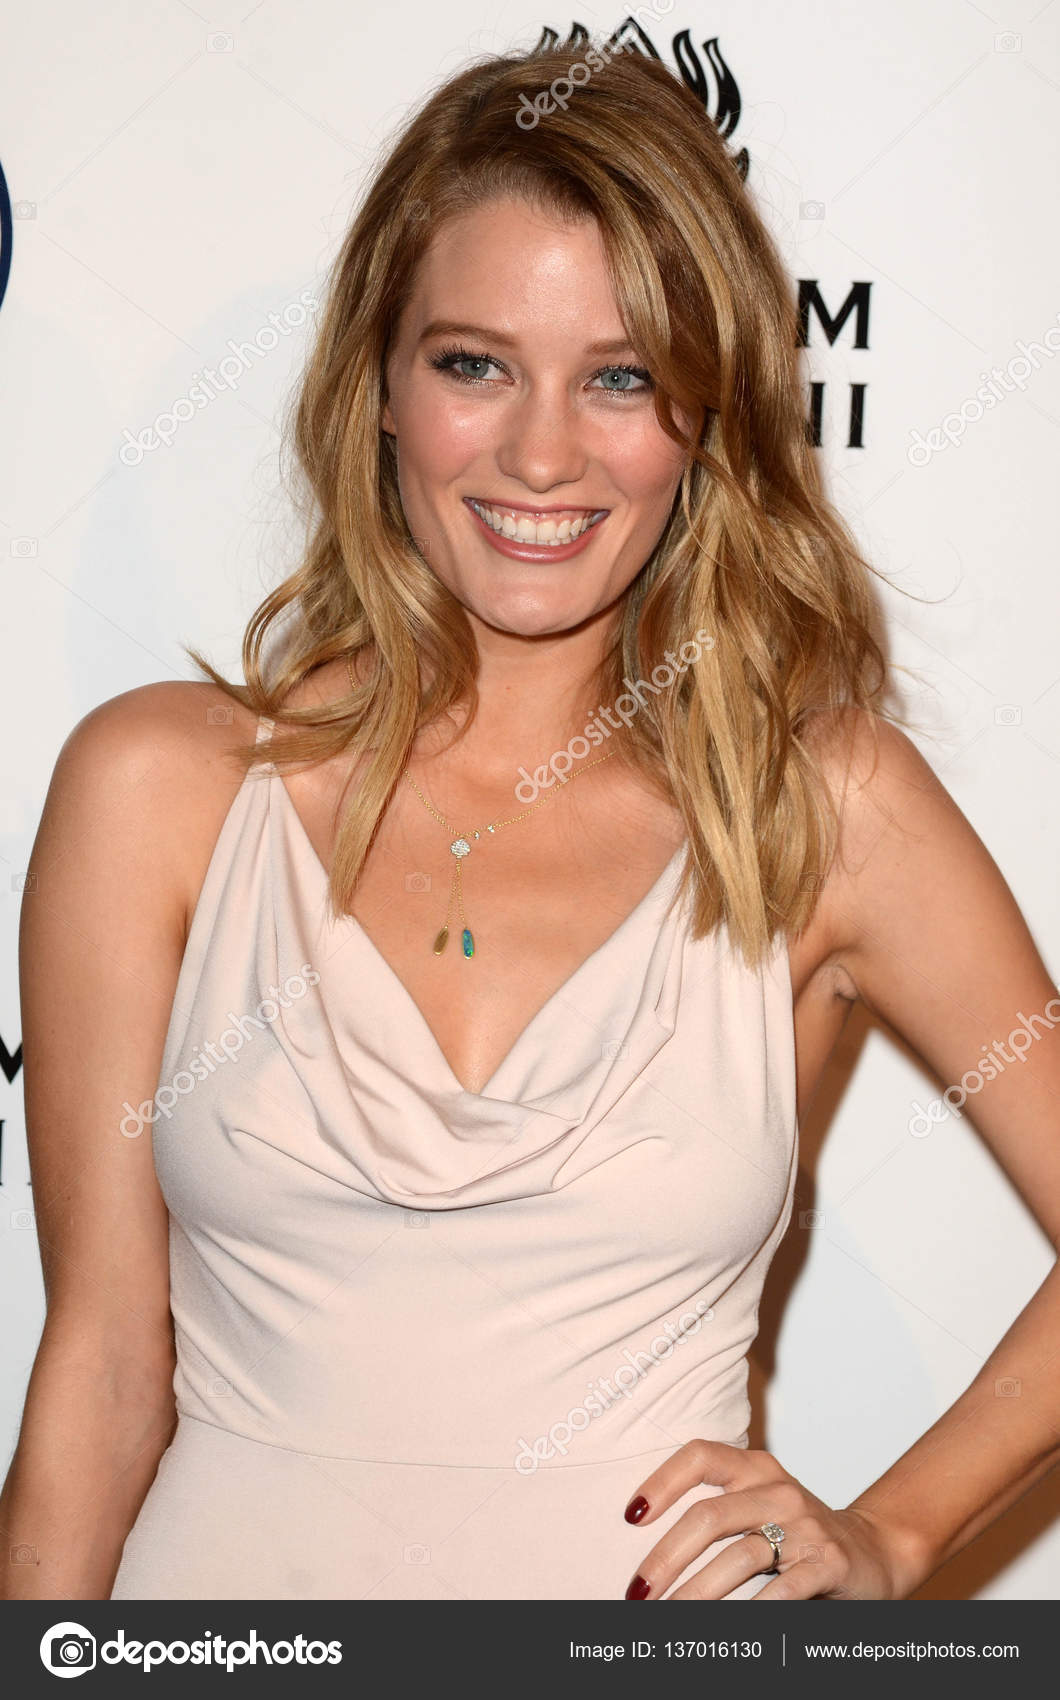 Ashley Hinshaw Nude Photos 6